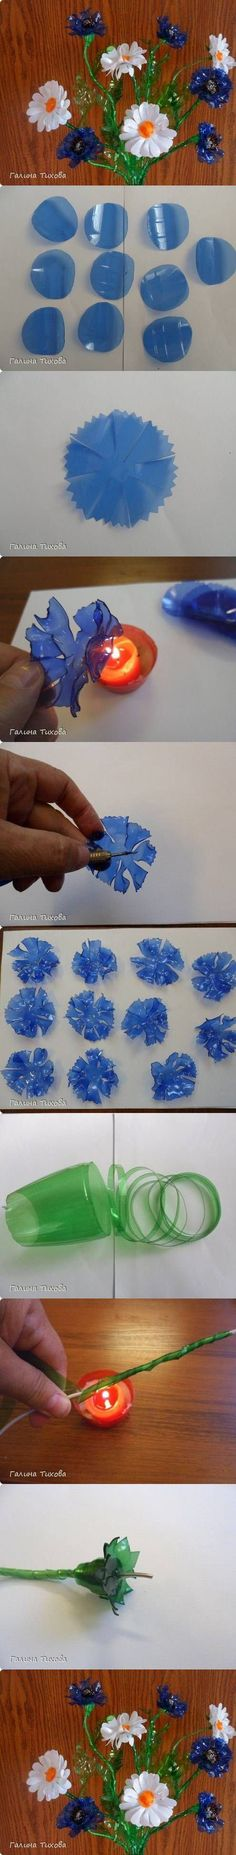 Beautiful Plastic Flower | DIY & Crafts Tutorials